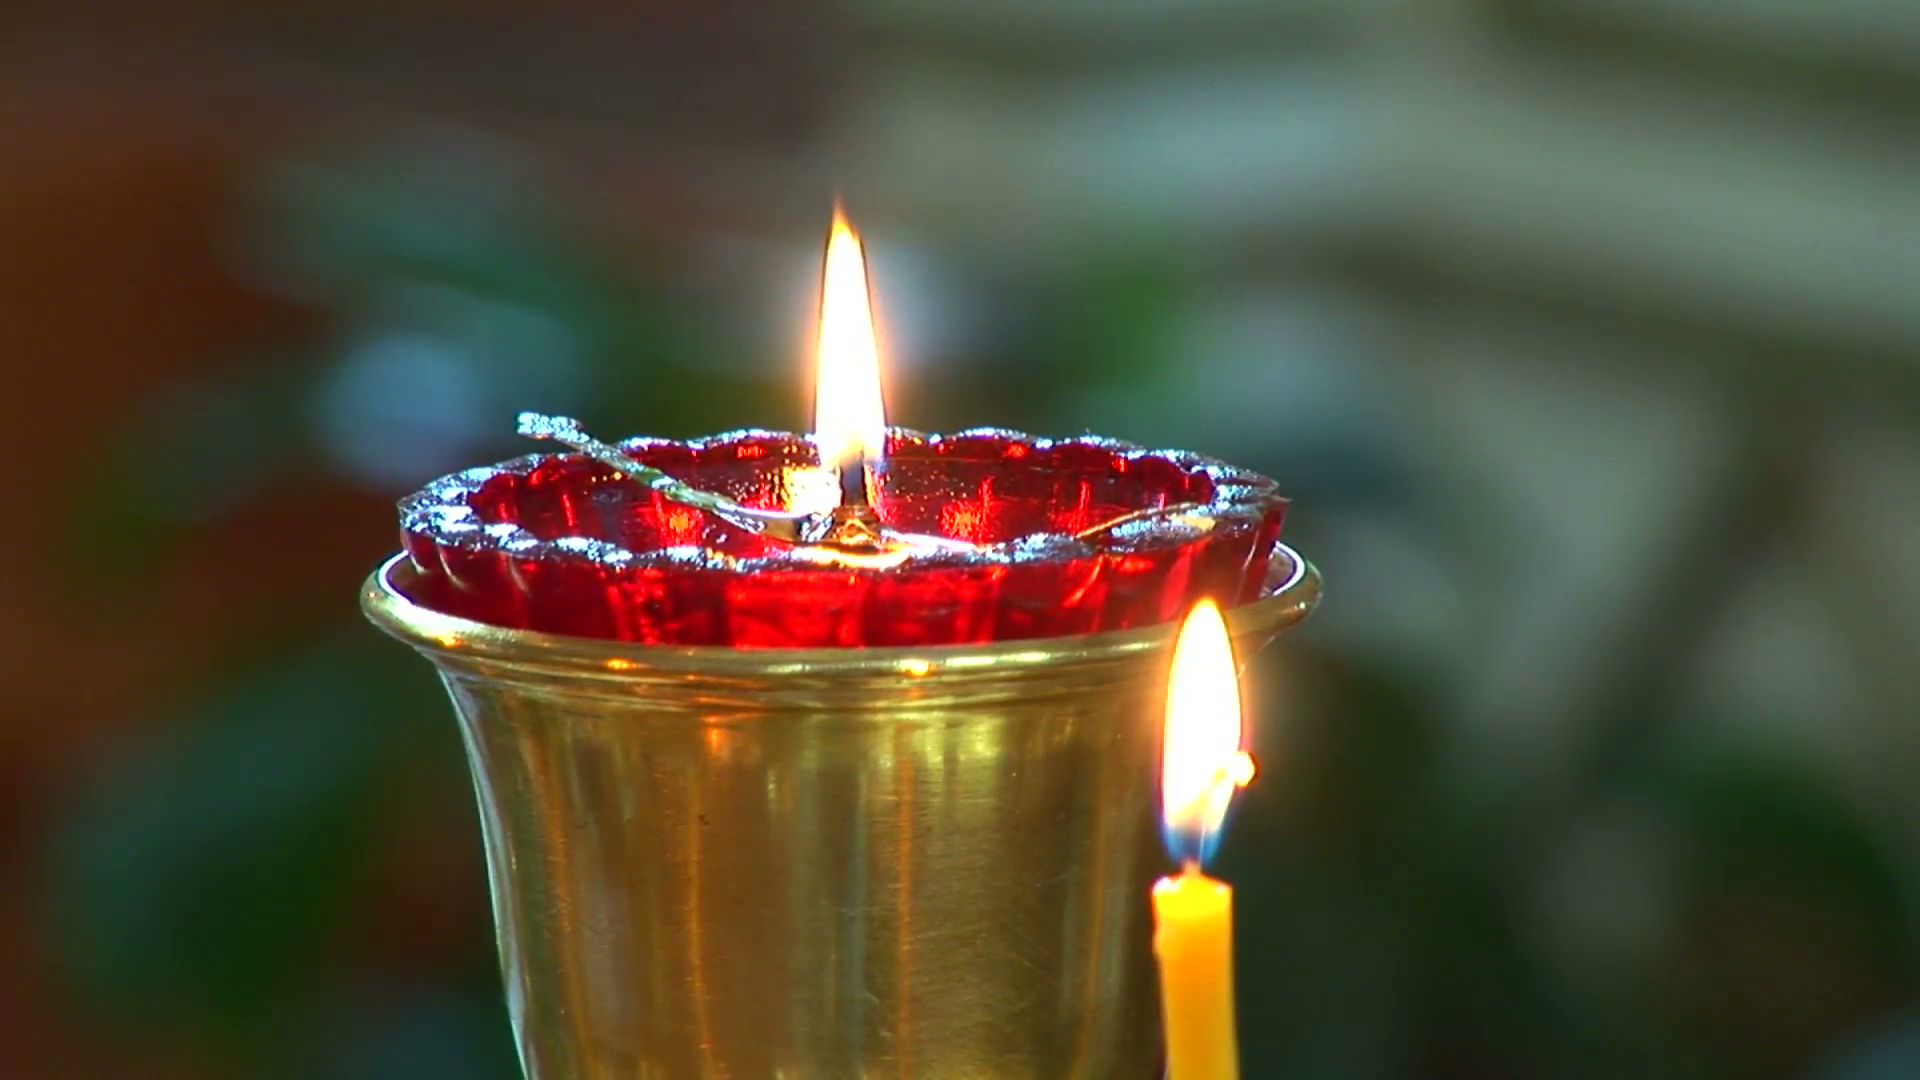 https://content.schools.by/2bobr/library/burning-candles-in-the-church_e1u4-ve3l__F0000.png